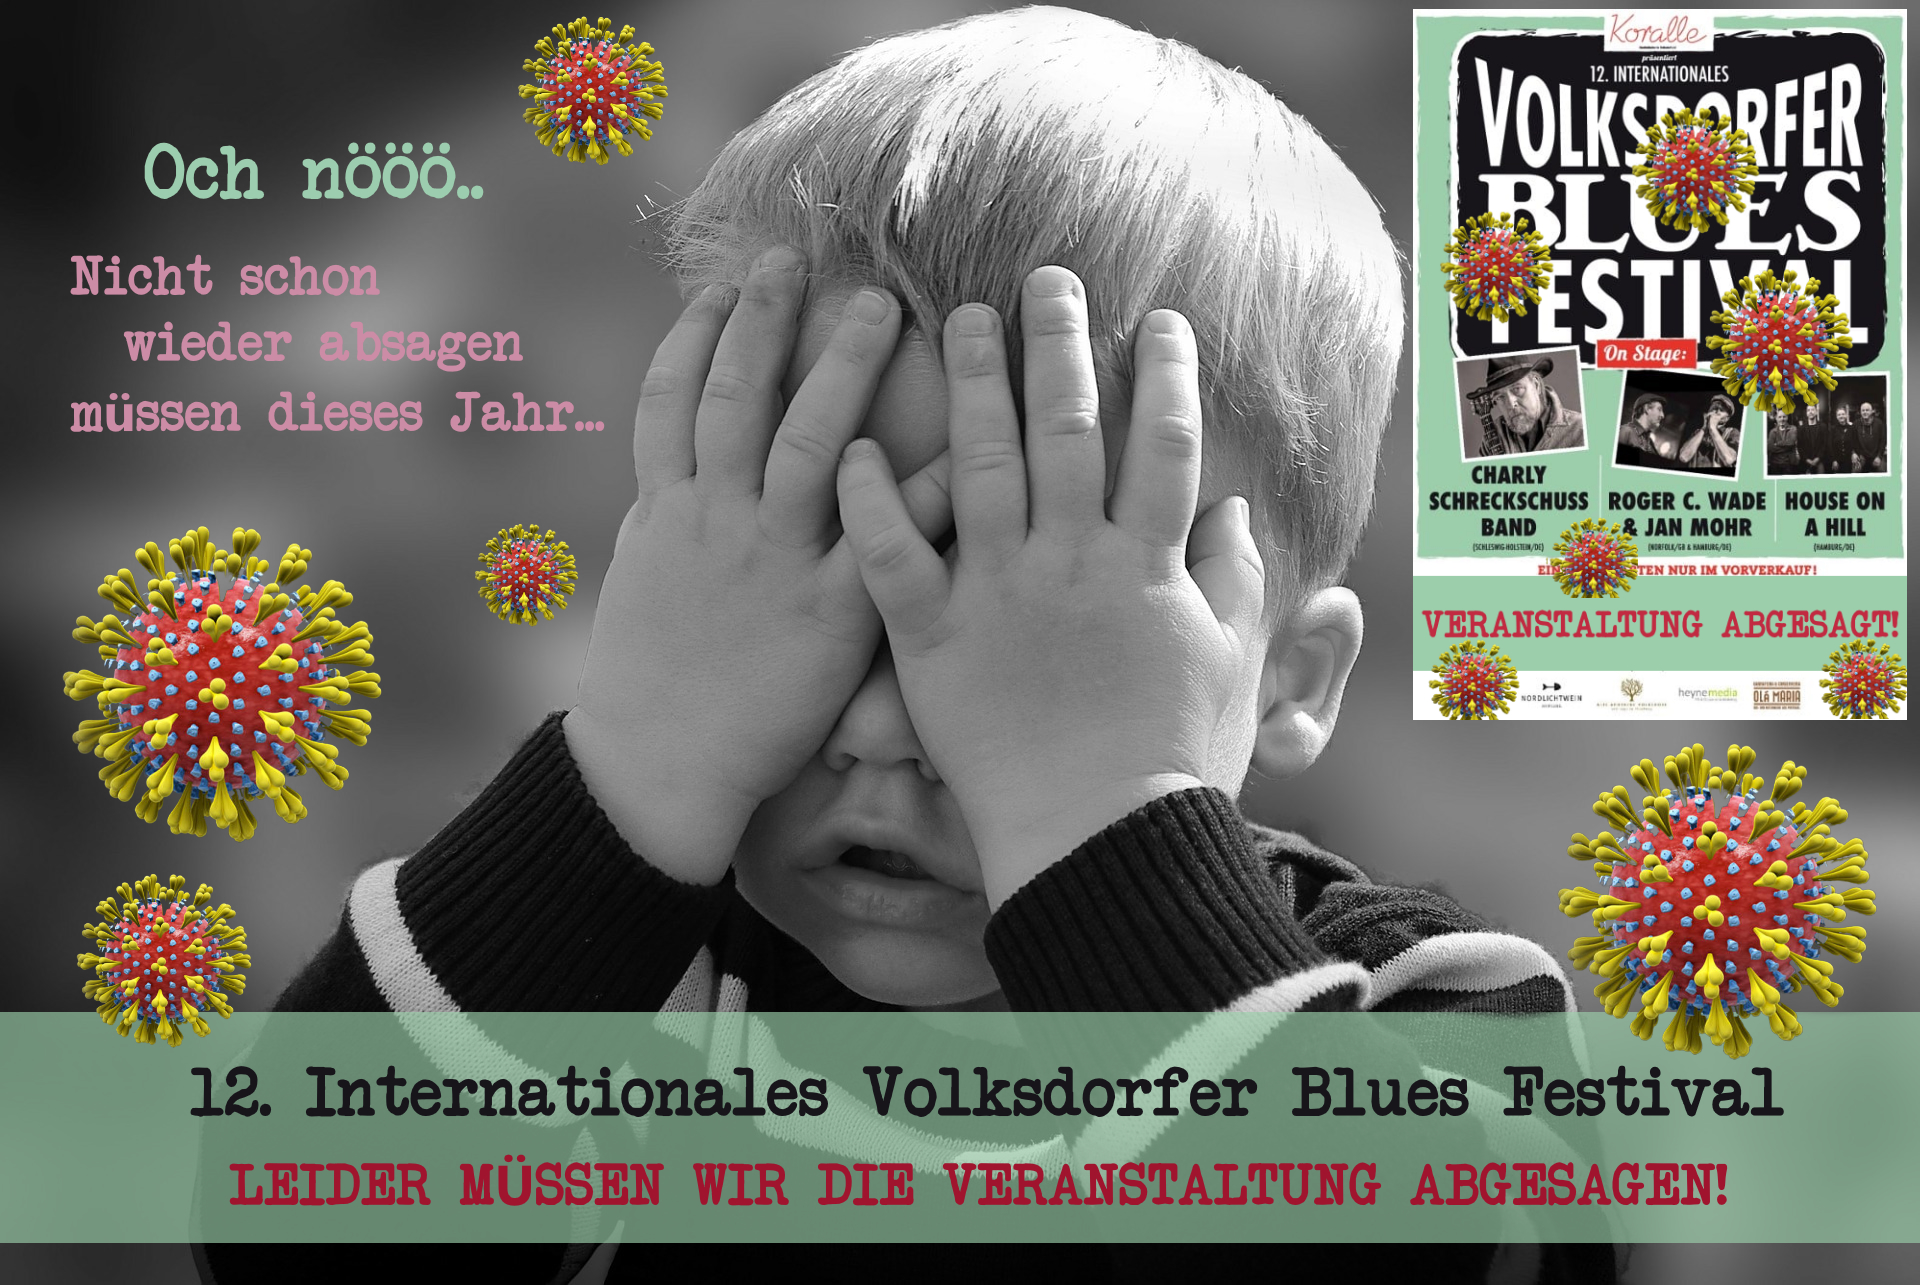 21.11.2020 – 12. Internationales Volksdorfer Blues Festival abgesagt